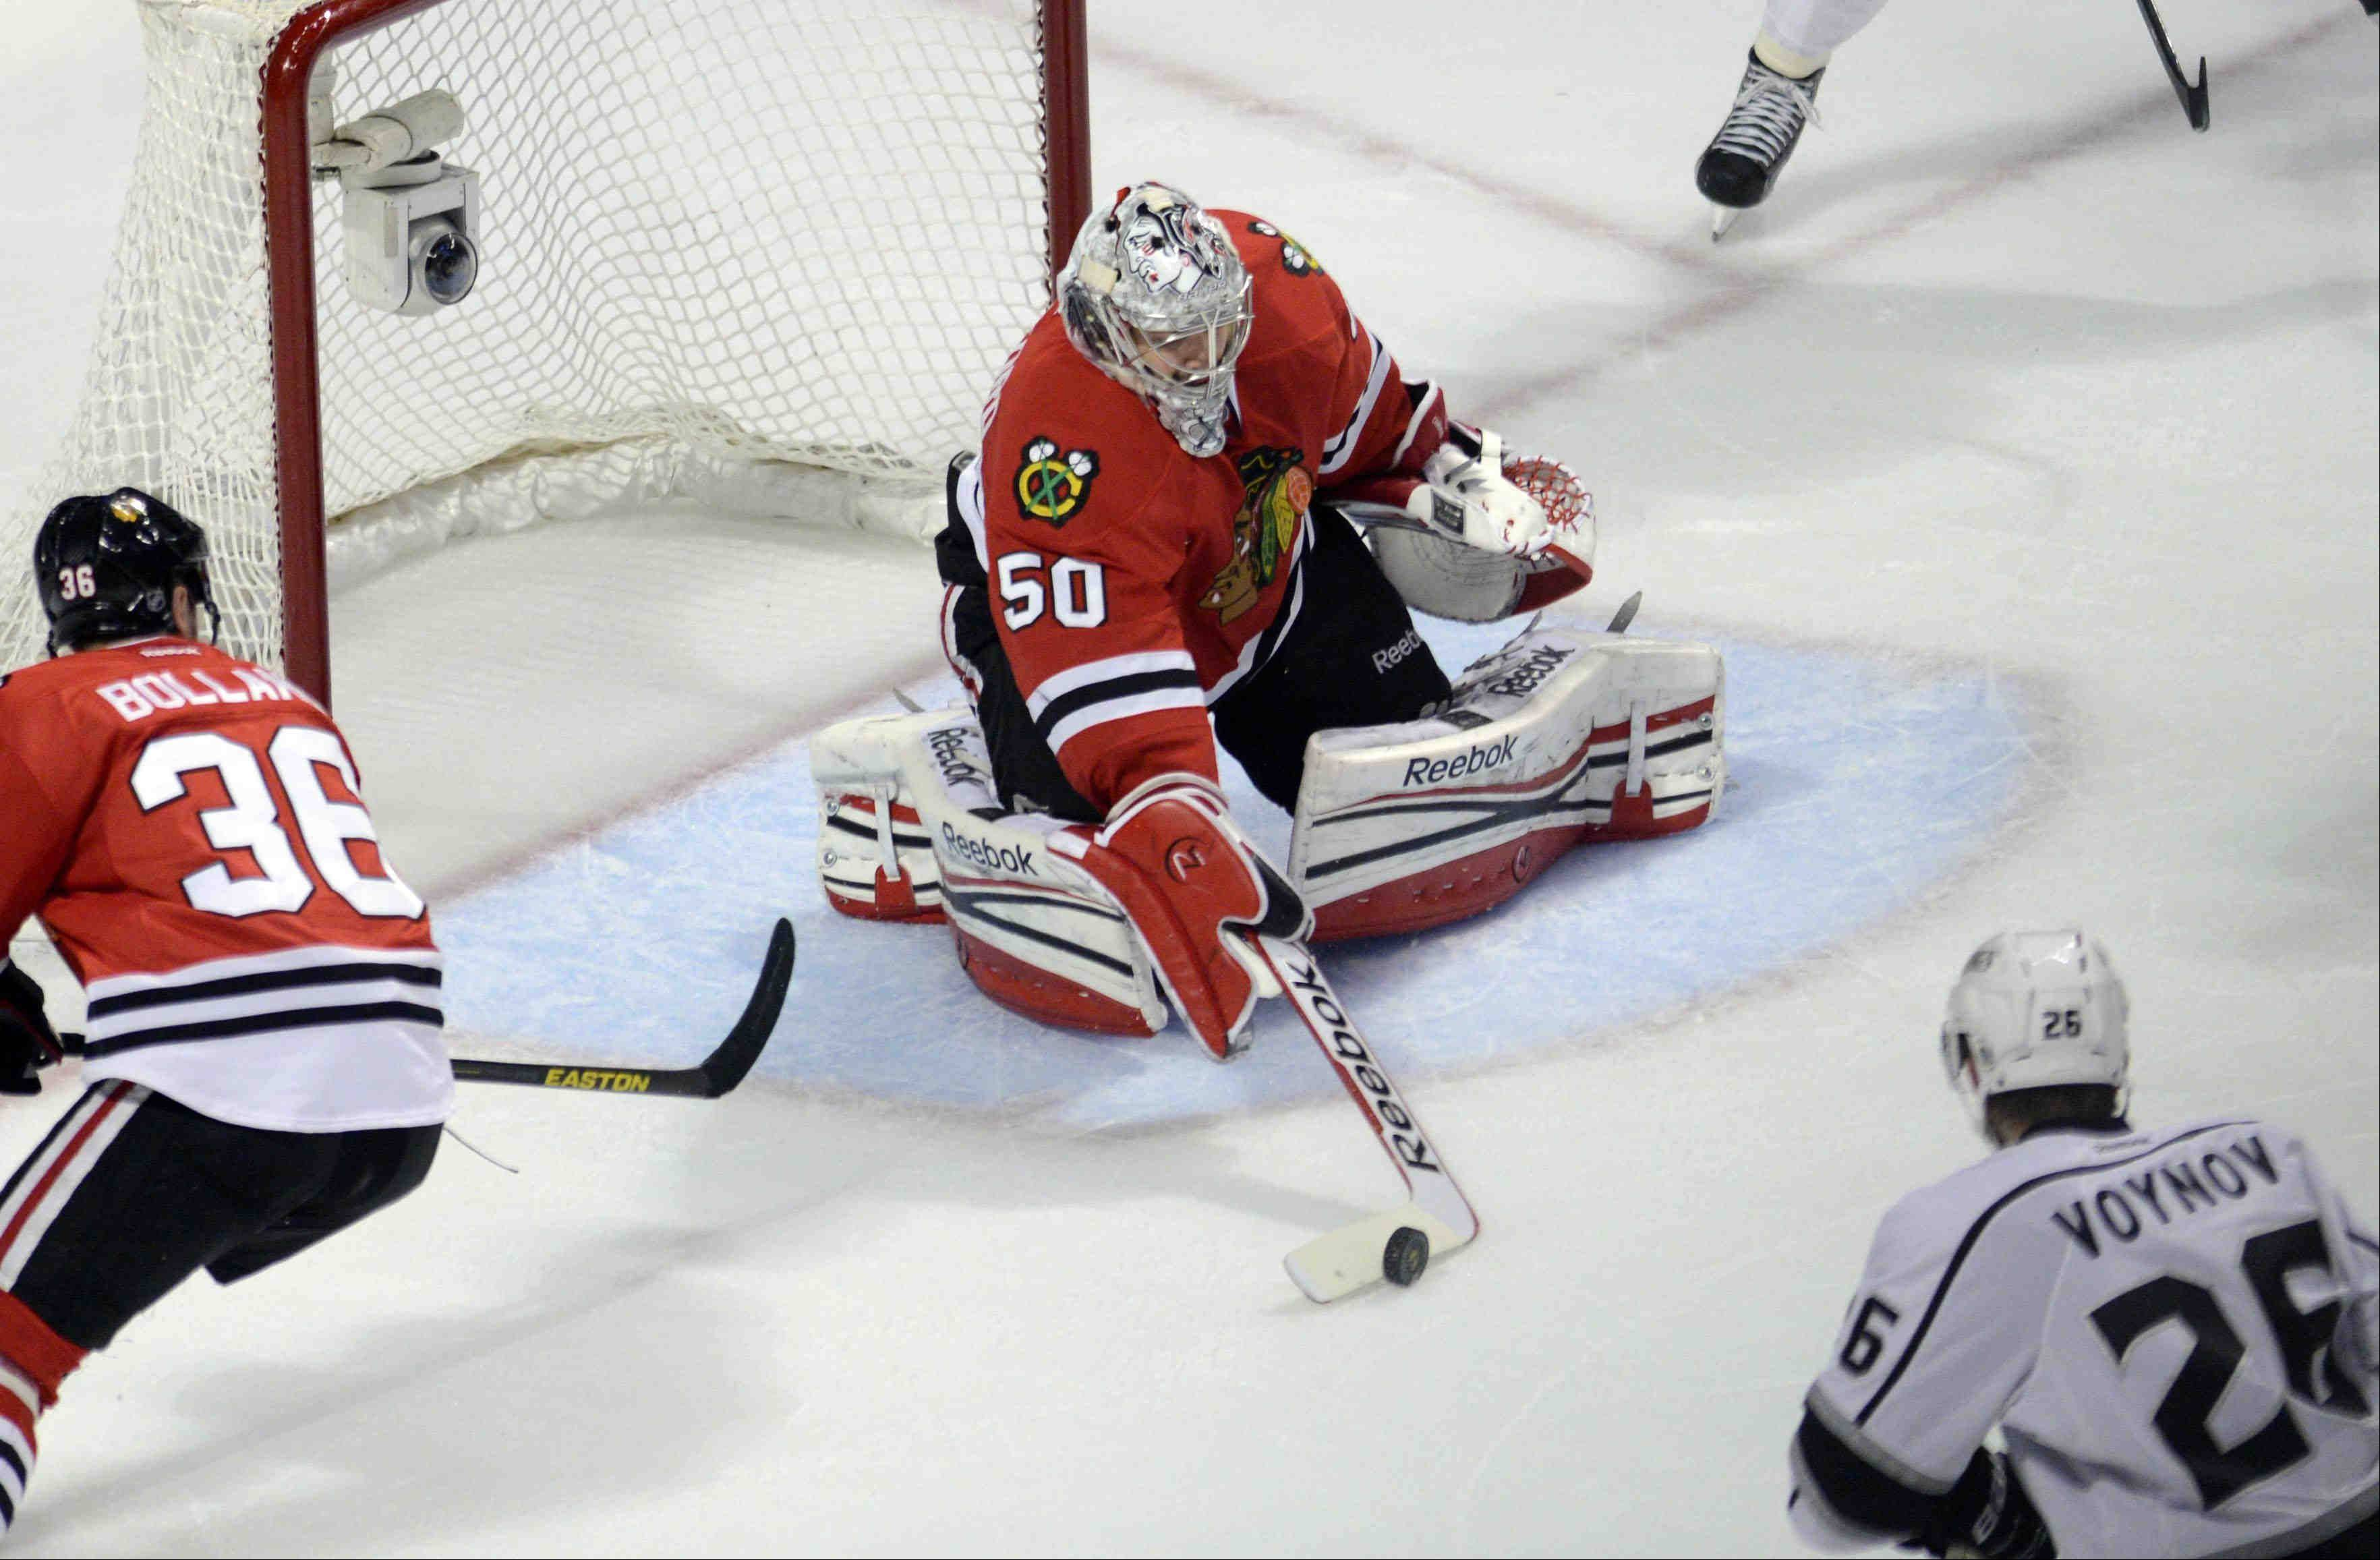 Chicago Blackhawks goalie Corey Crawford pokes the puck away form the net during an Los Angeles Kings power play Saturday during the NHL Western Conference Finals Game 5 at the United Center in Chicago.